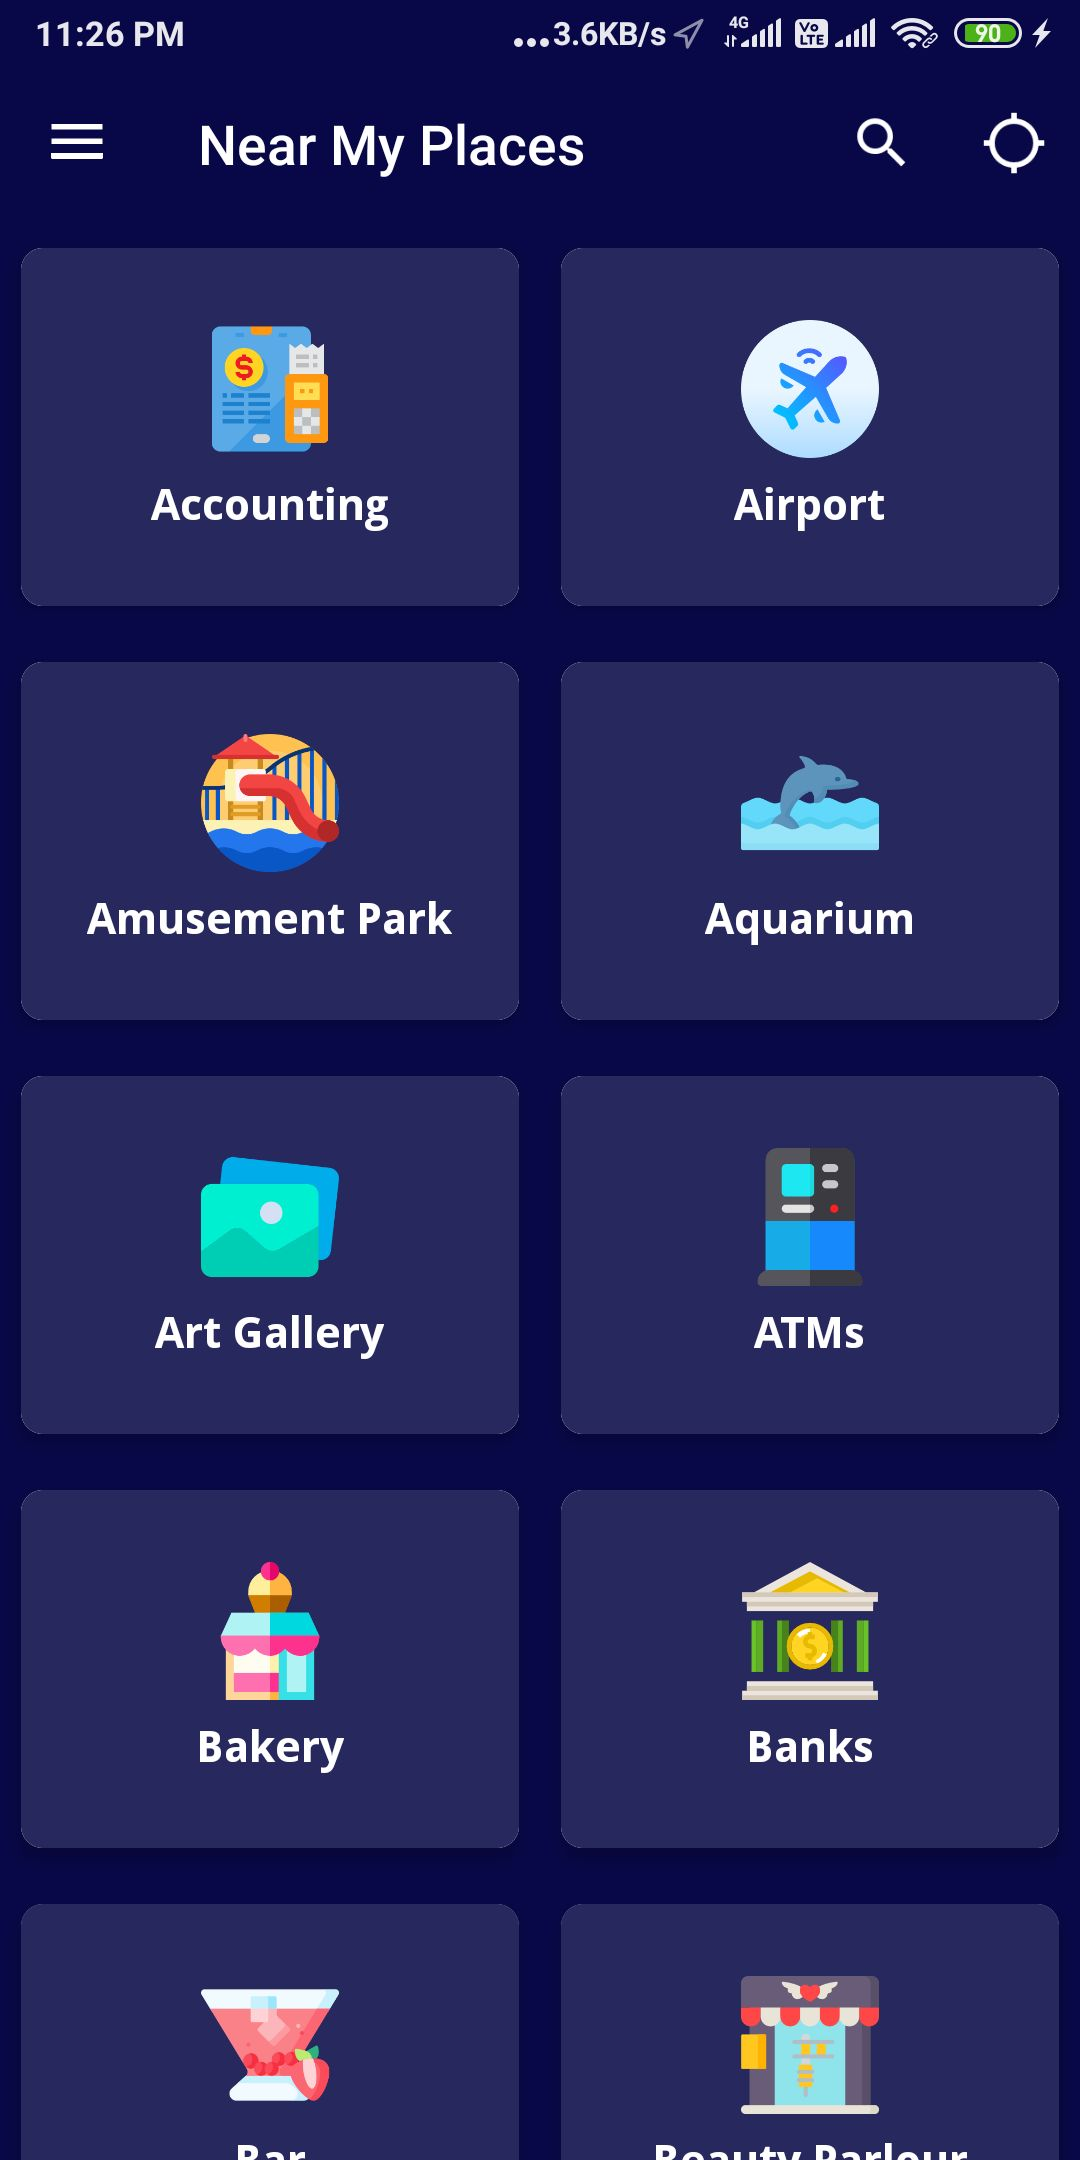 Near My Places - Android App with Admob by Samarth4   Codester